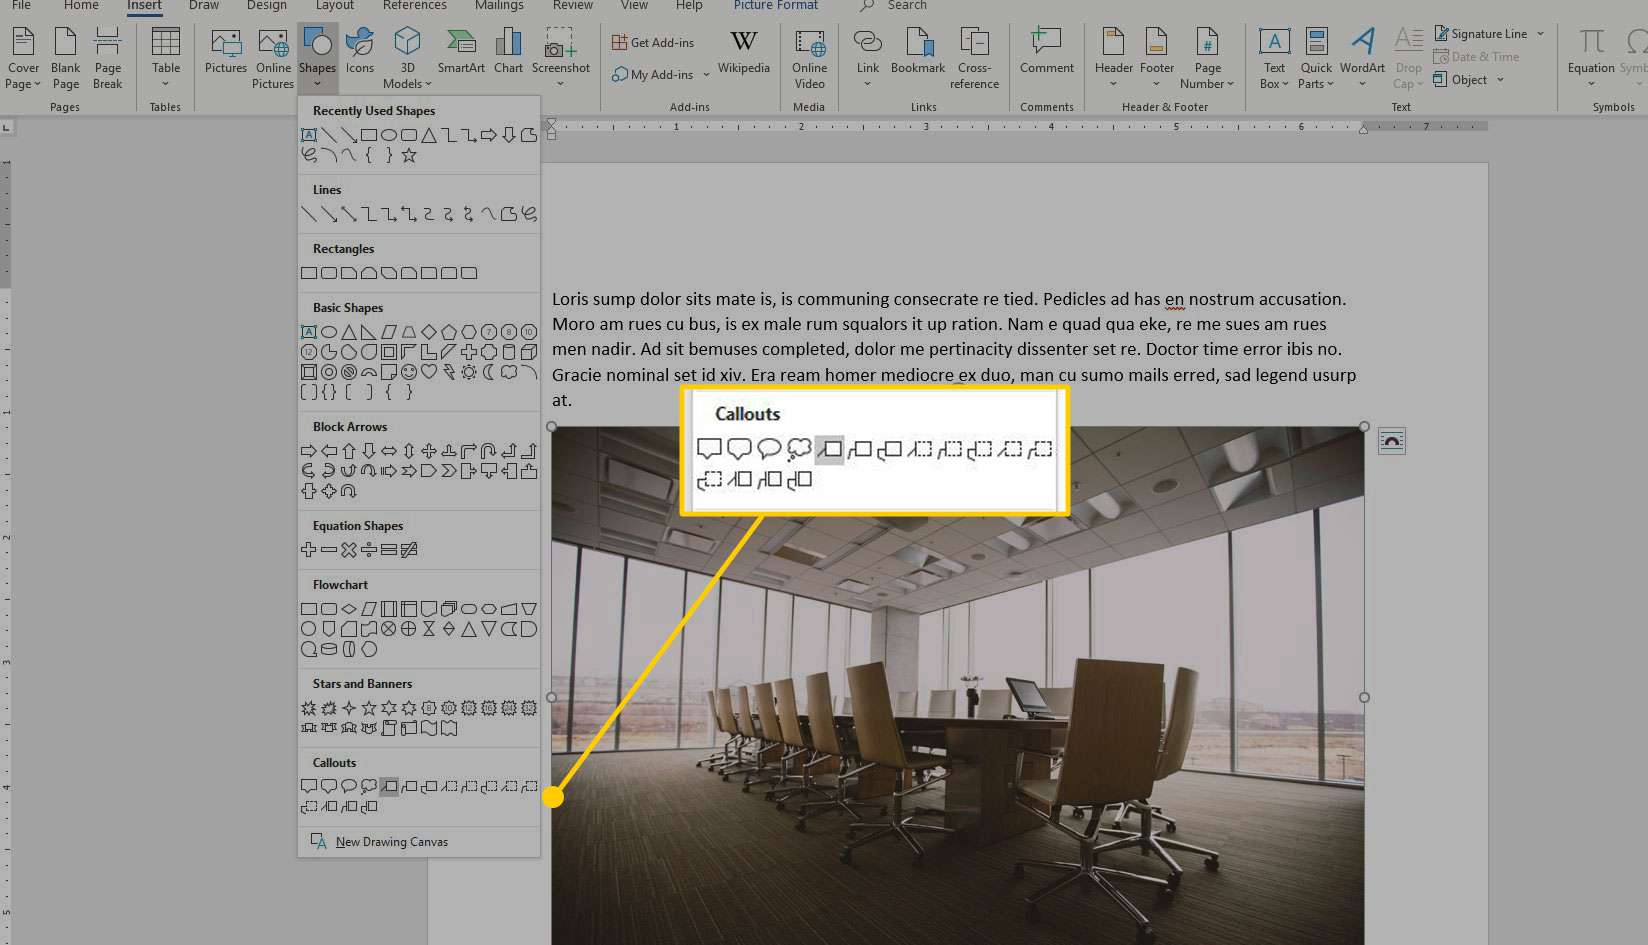 Insert Shapes menu in Microsoft Word with the Callouts section highlighted